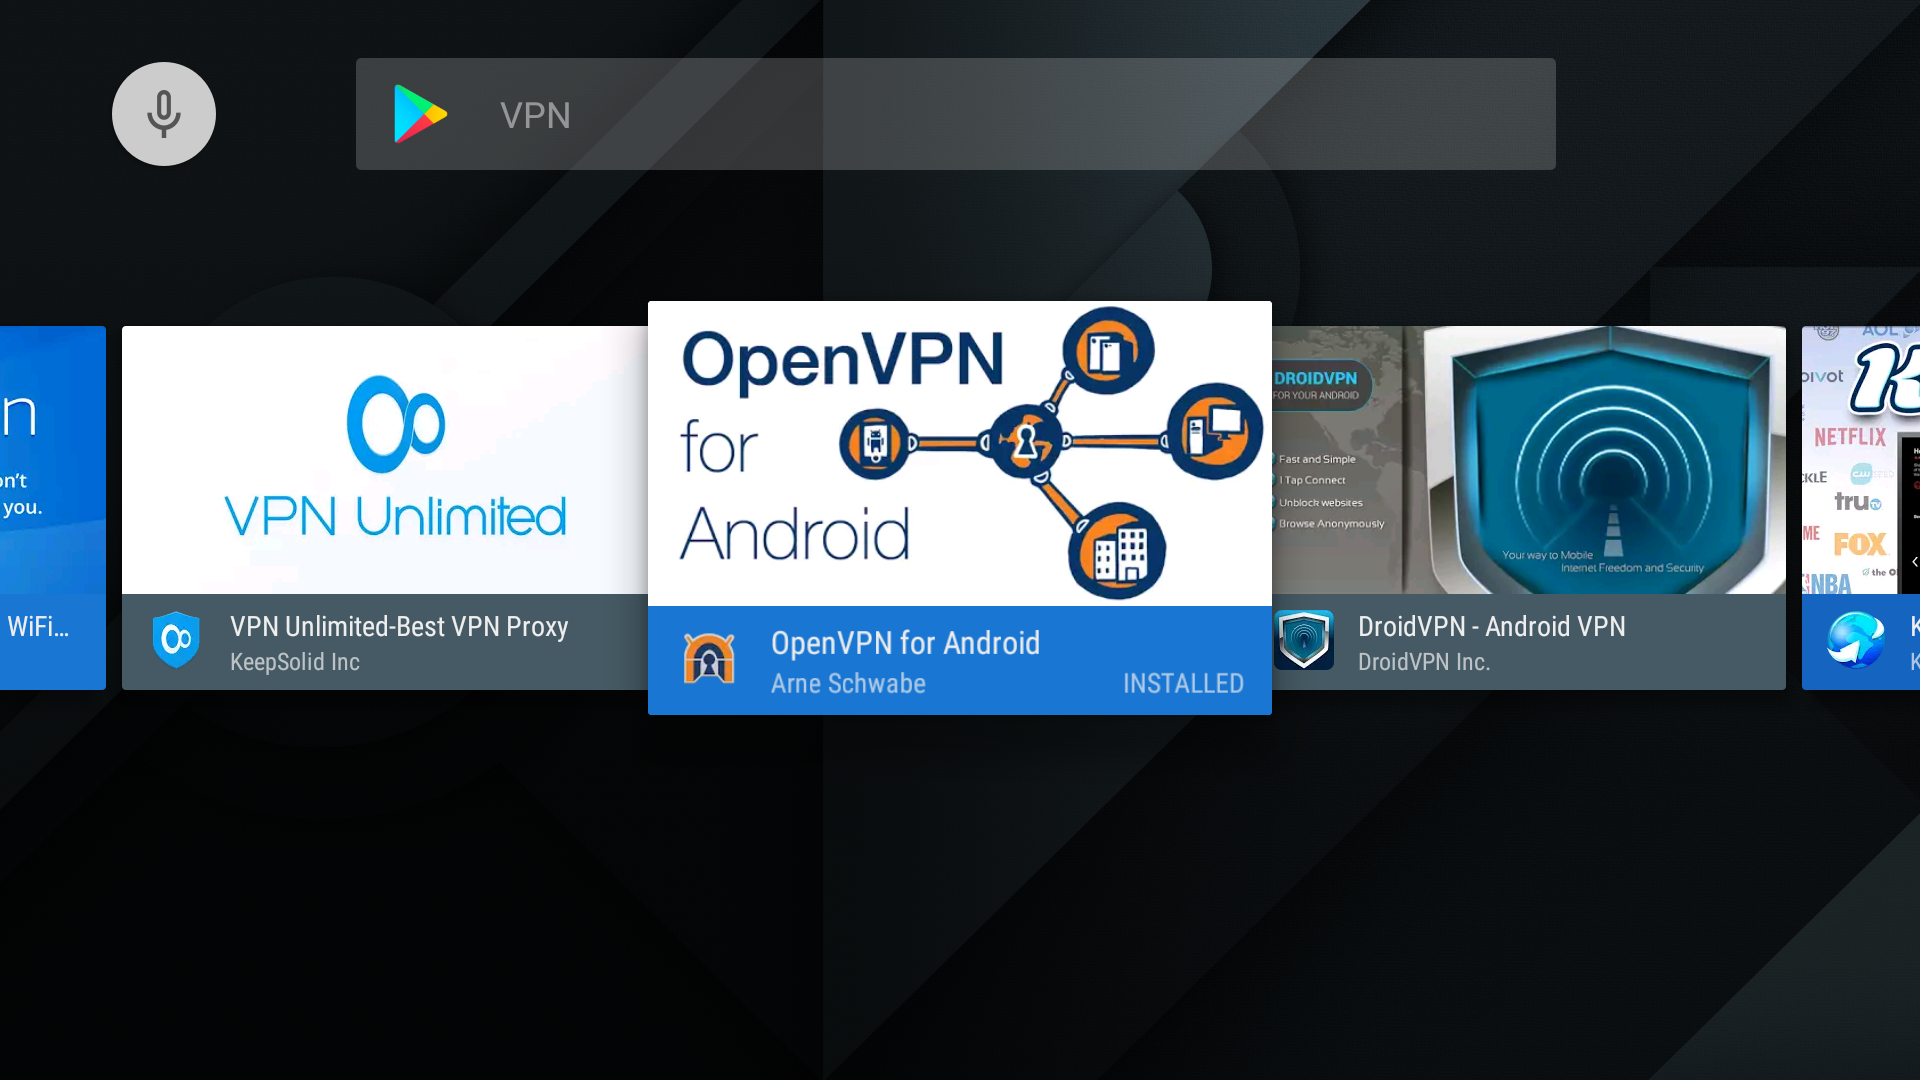 Configuring OpenVPN / NordVPN on Nvidia Shield TV / Android TV using